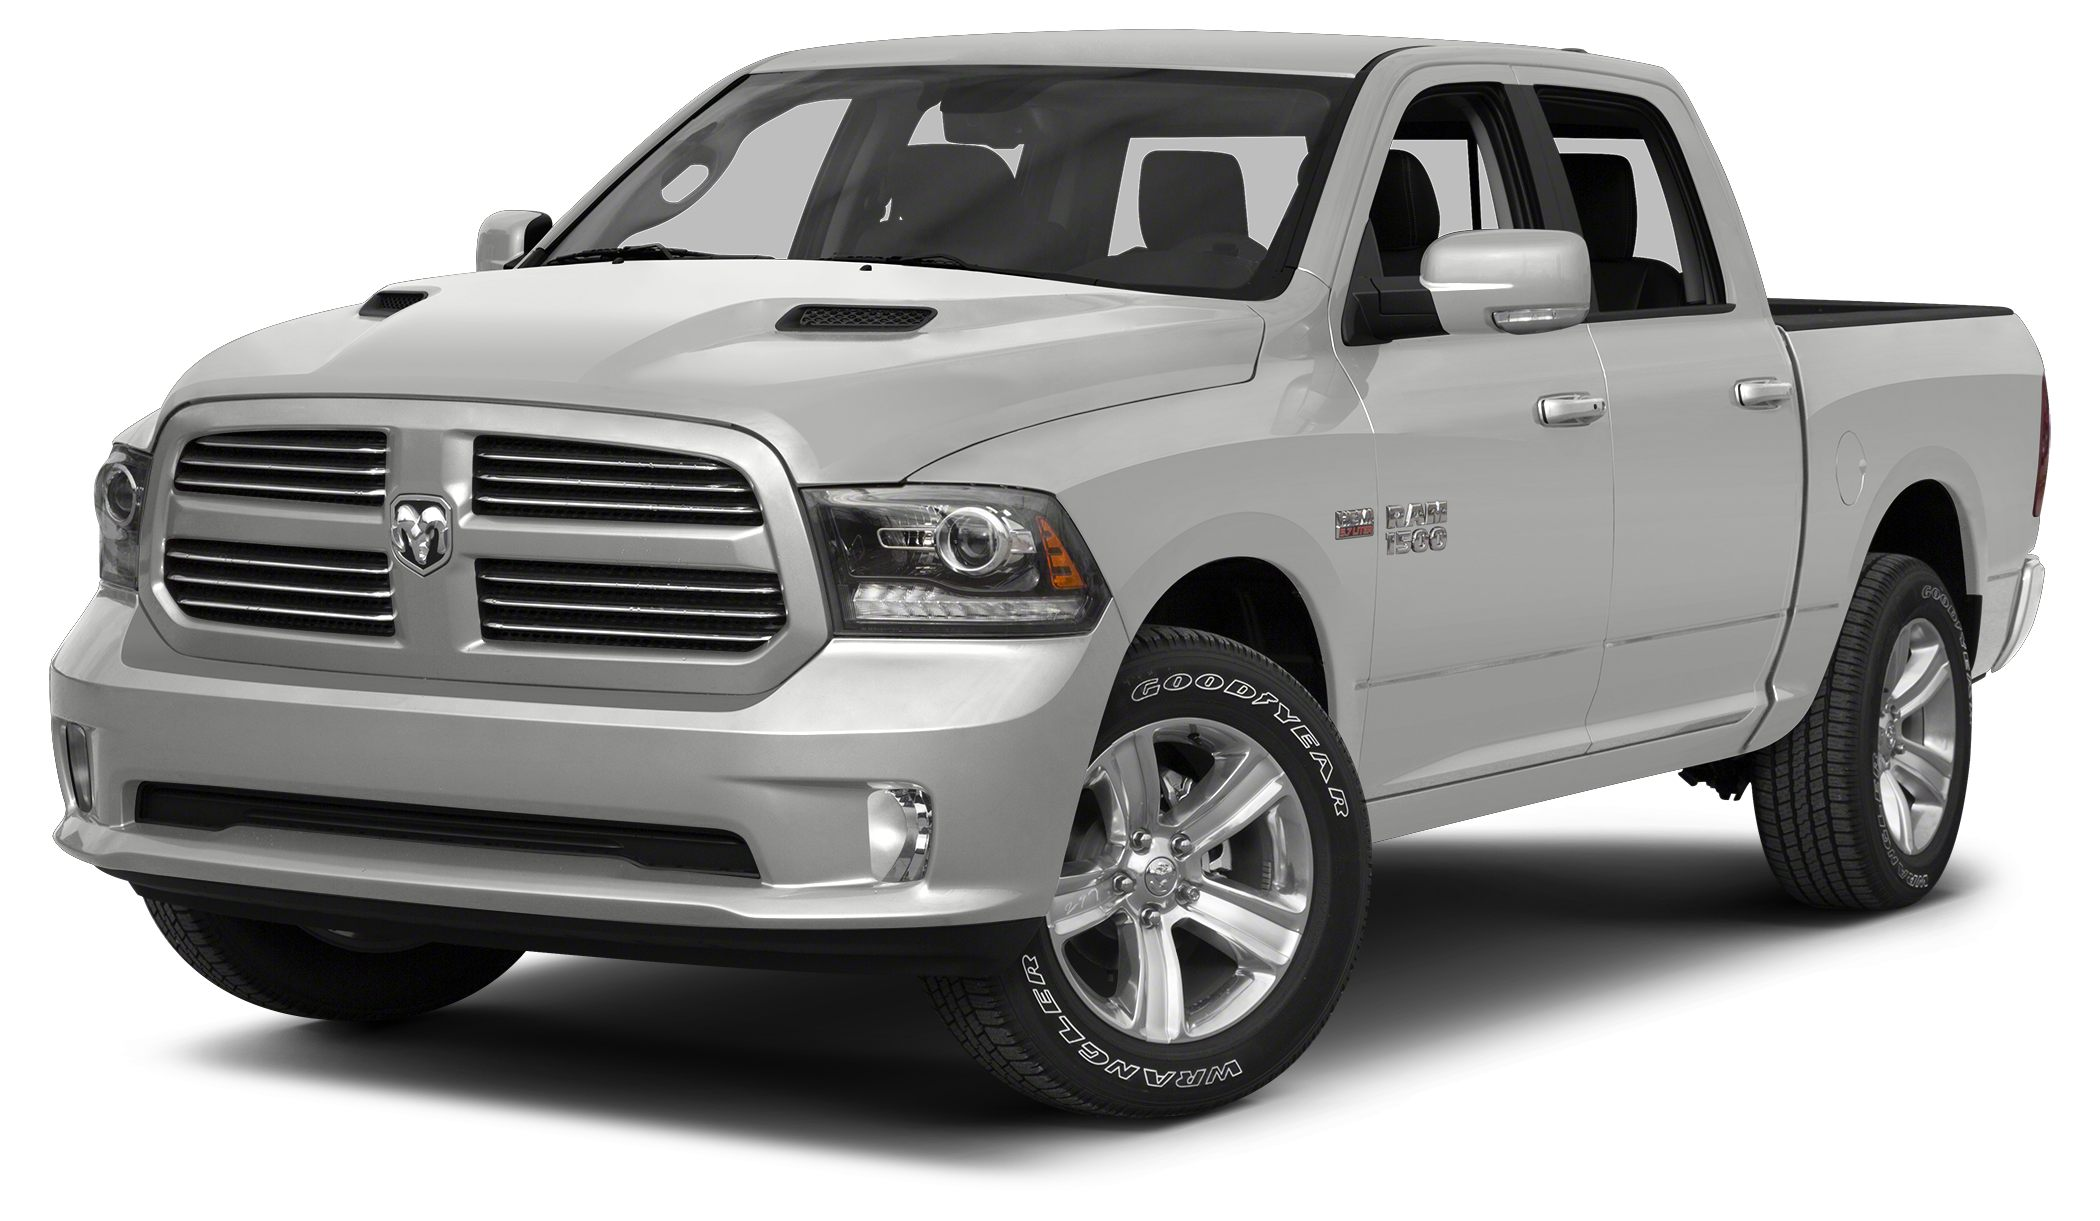 2013 RAM 1500 SLT Short Bed 4 Wheel Drive Fresh arrival More pictures coming soon If you deman